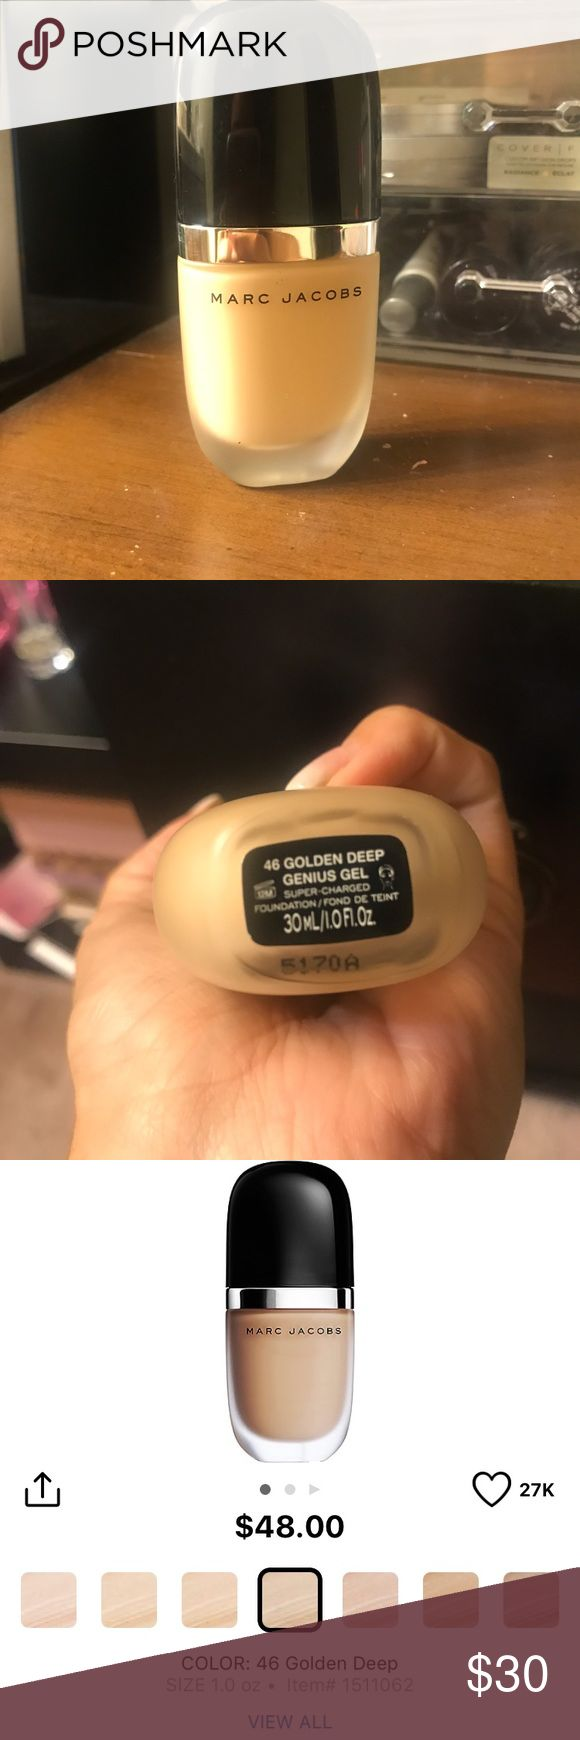 Marc Jacobs Genius Gel Foundation- Golden Deep Only used once, completely full. Retails for $48 Marc Jacobs Makeup Foundation